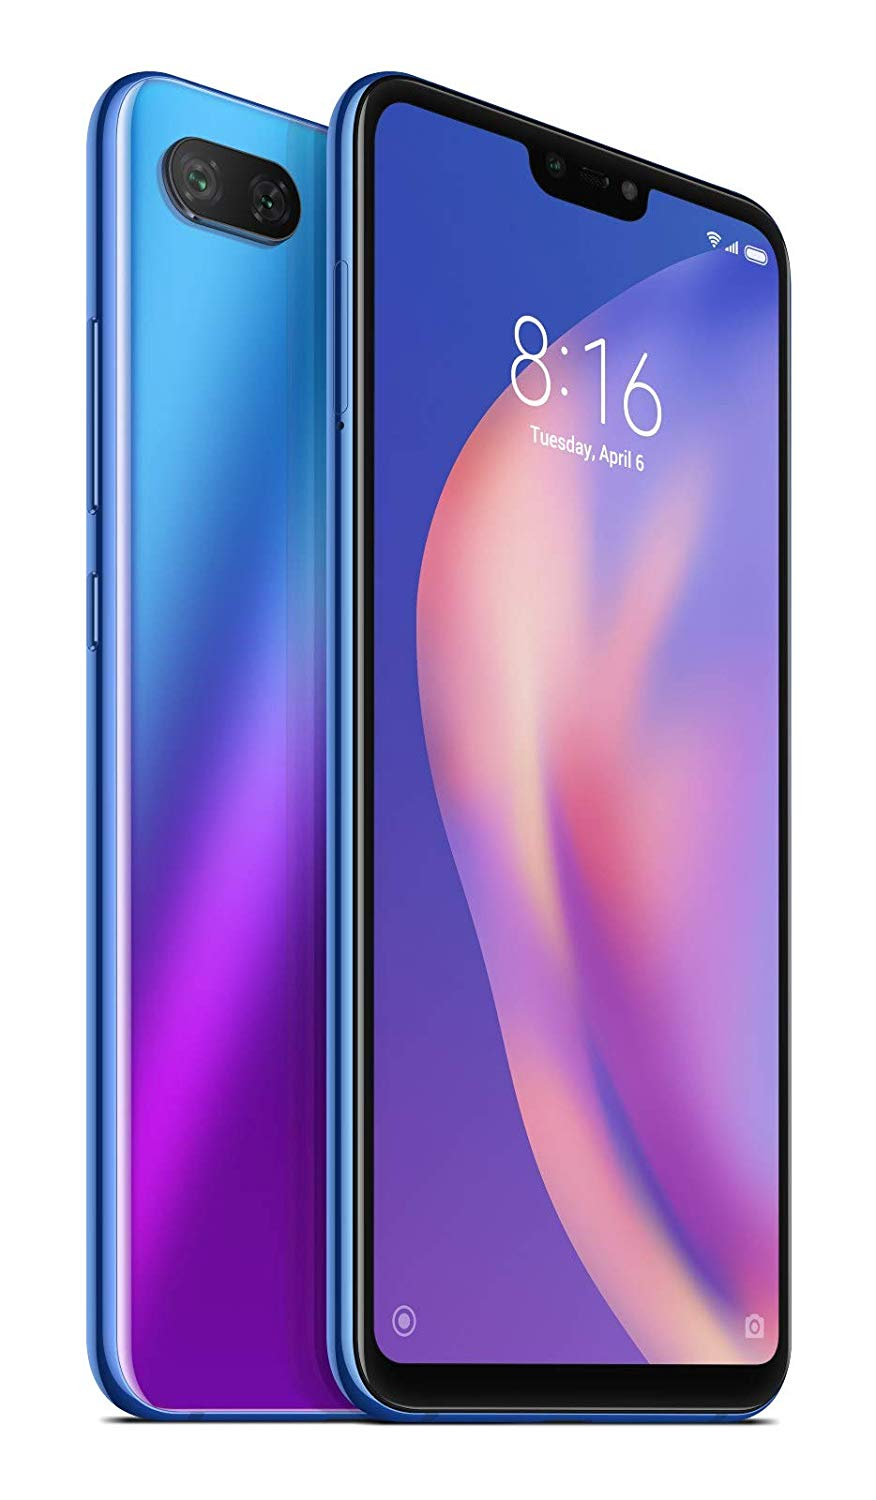 Xiaomi Mi 8 Lite, Global Version, Band 4G/LTE/WiFi, Dual SIM, 6 4GB Embedded Memory, 4GB Ram, (15,9 Cm (PA